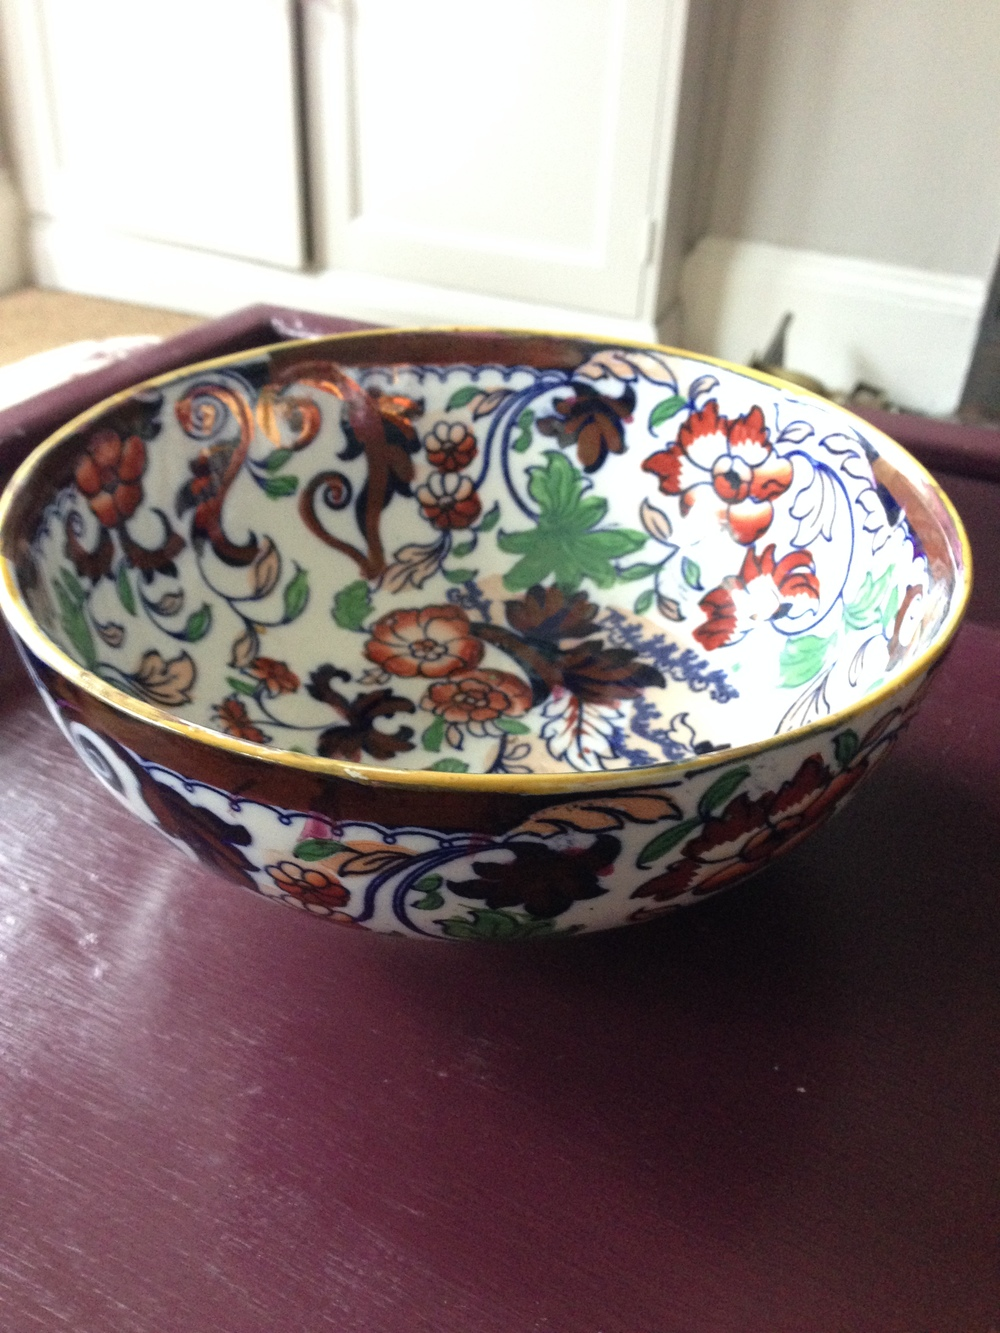 Beautiful vintage bowl I purchased